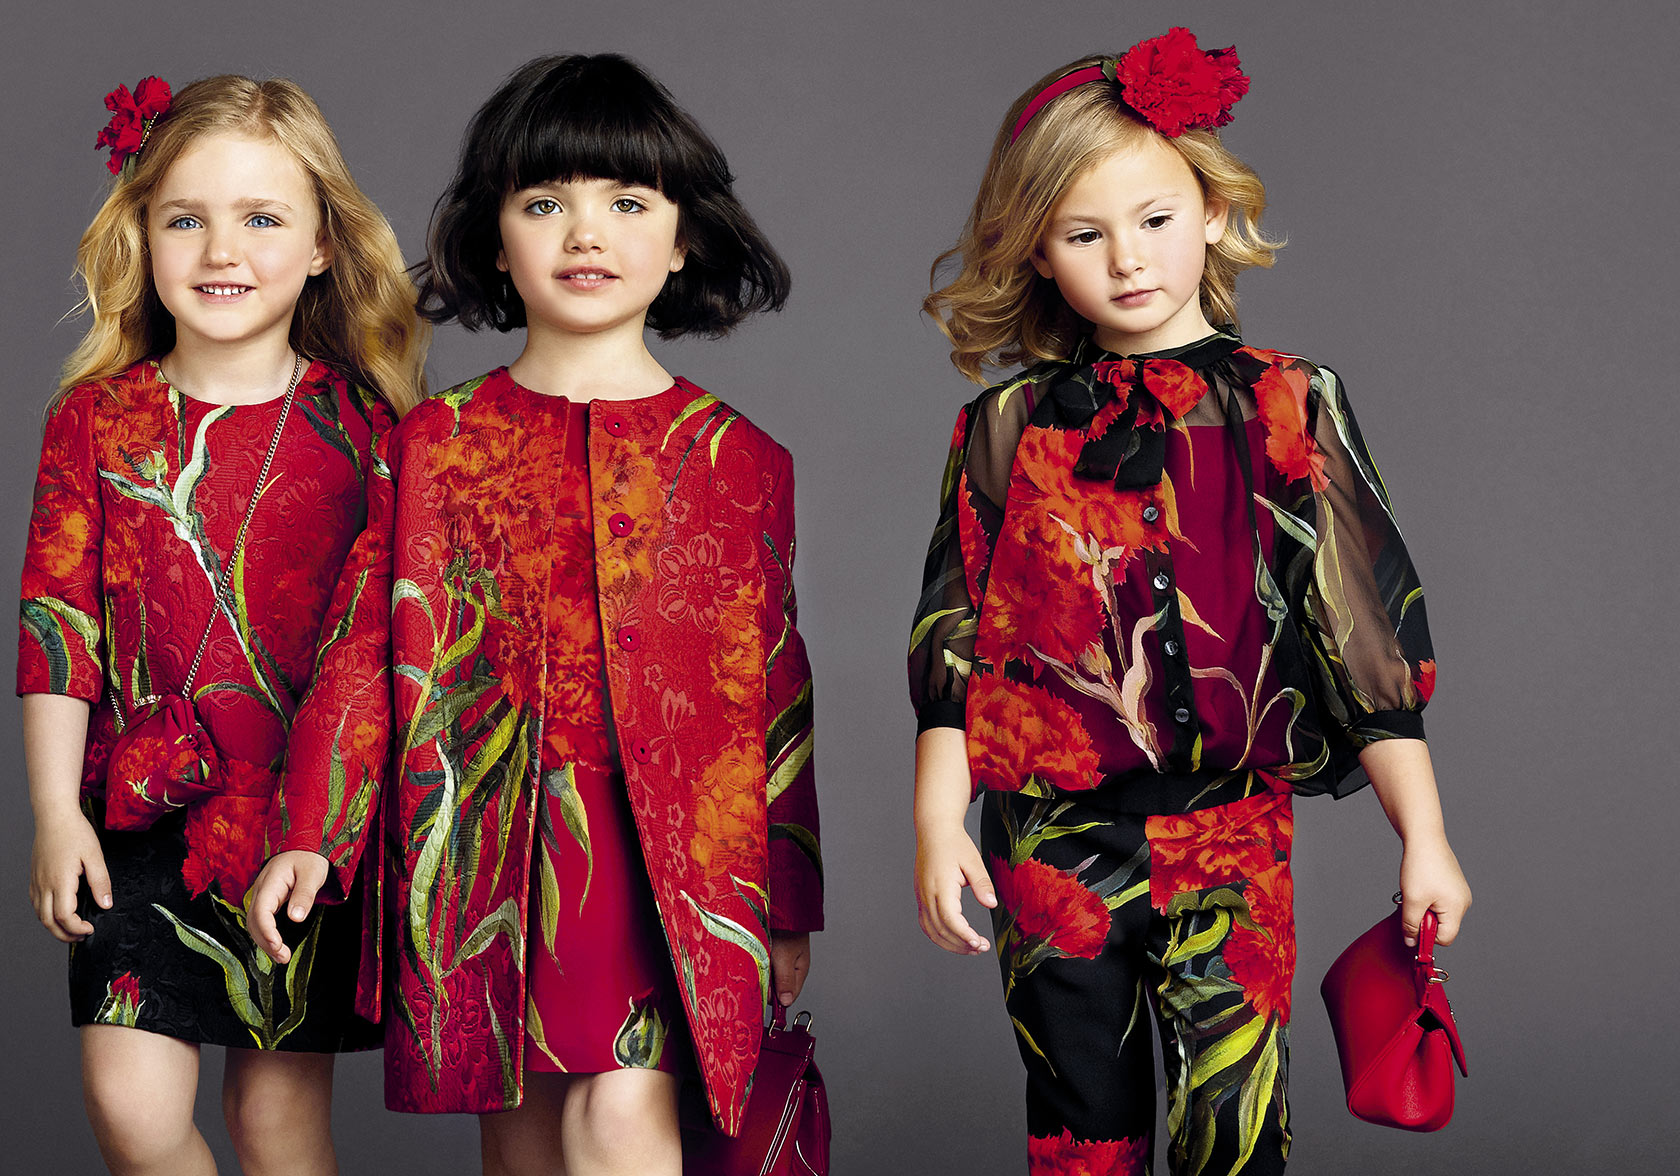 dolce-and-gabbana-summer-2015-child-collection-01-zoom.jpg